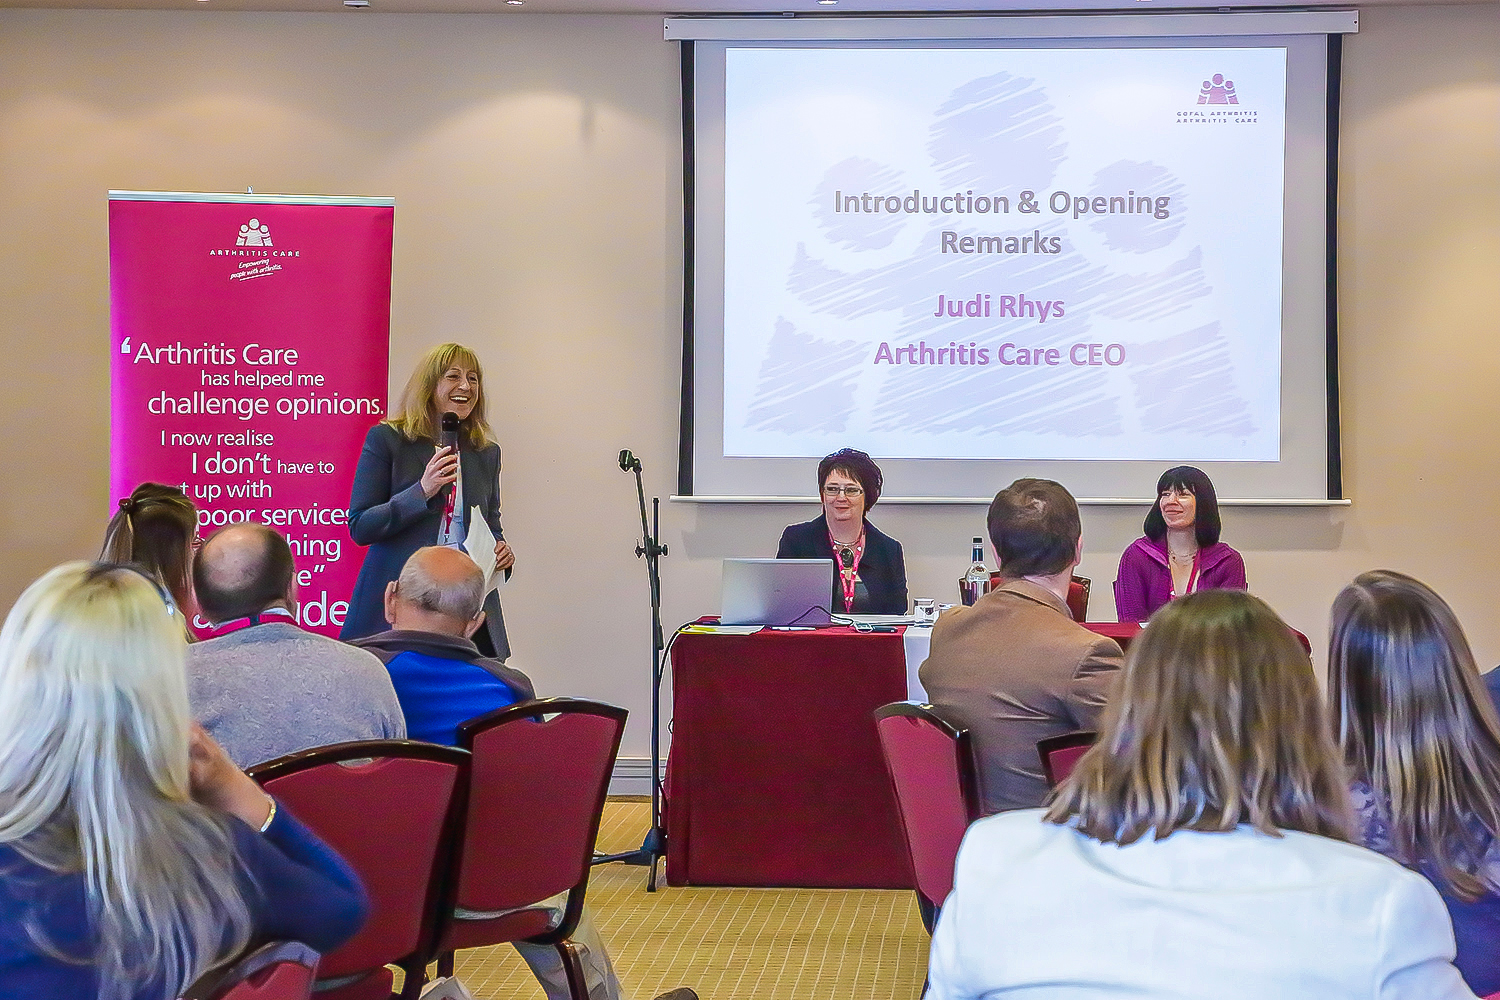 Coverage of Arthritis Care annual conference., Hotel, Mertopoll.